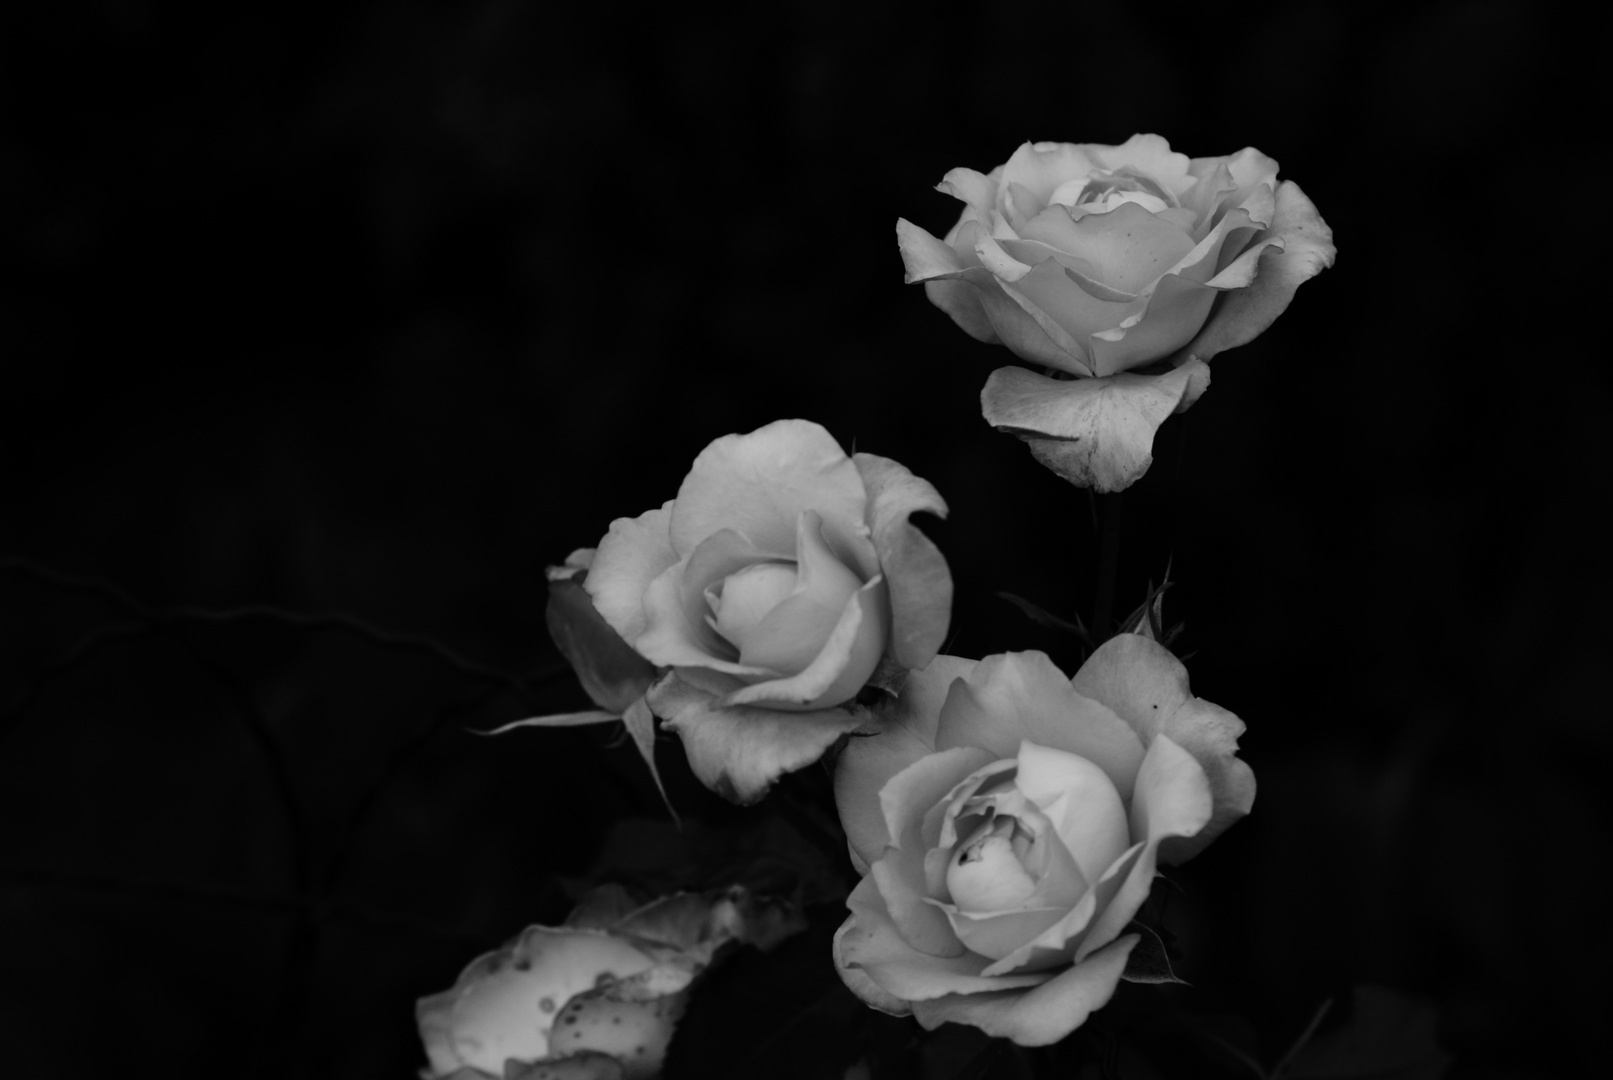 Roses in Darkness